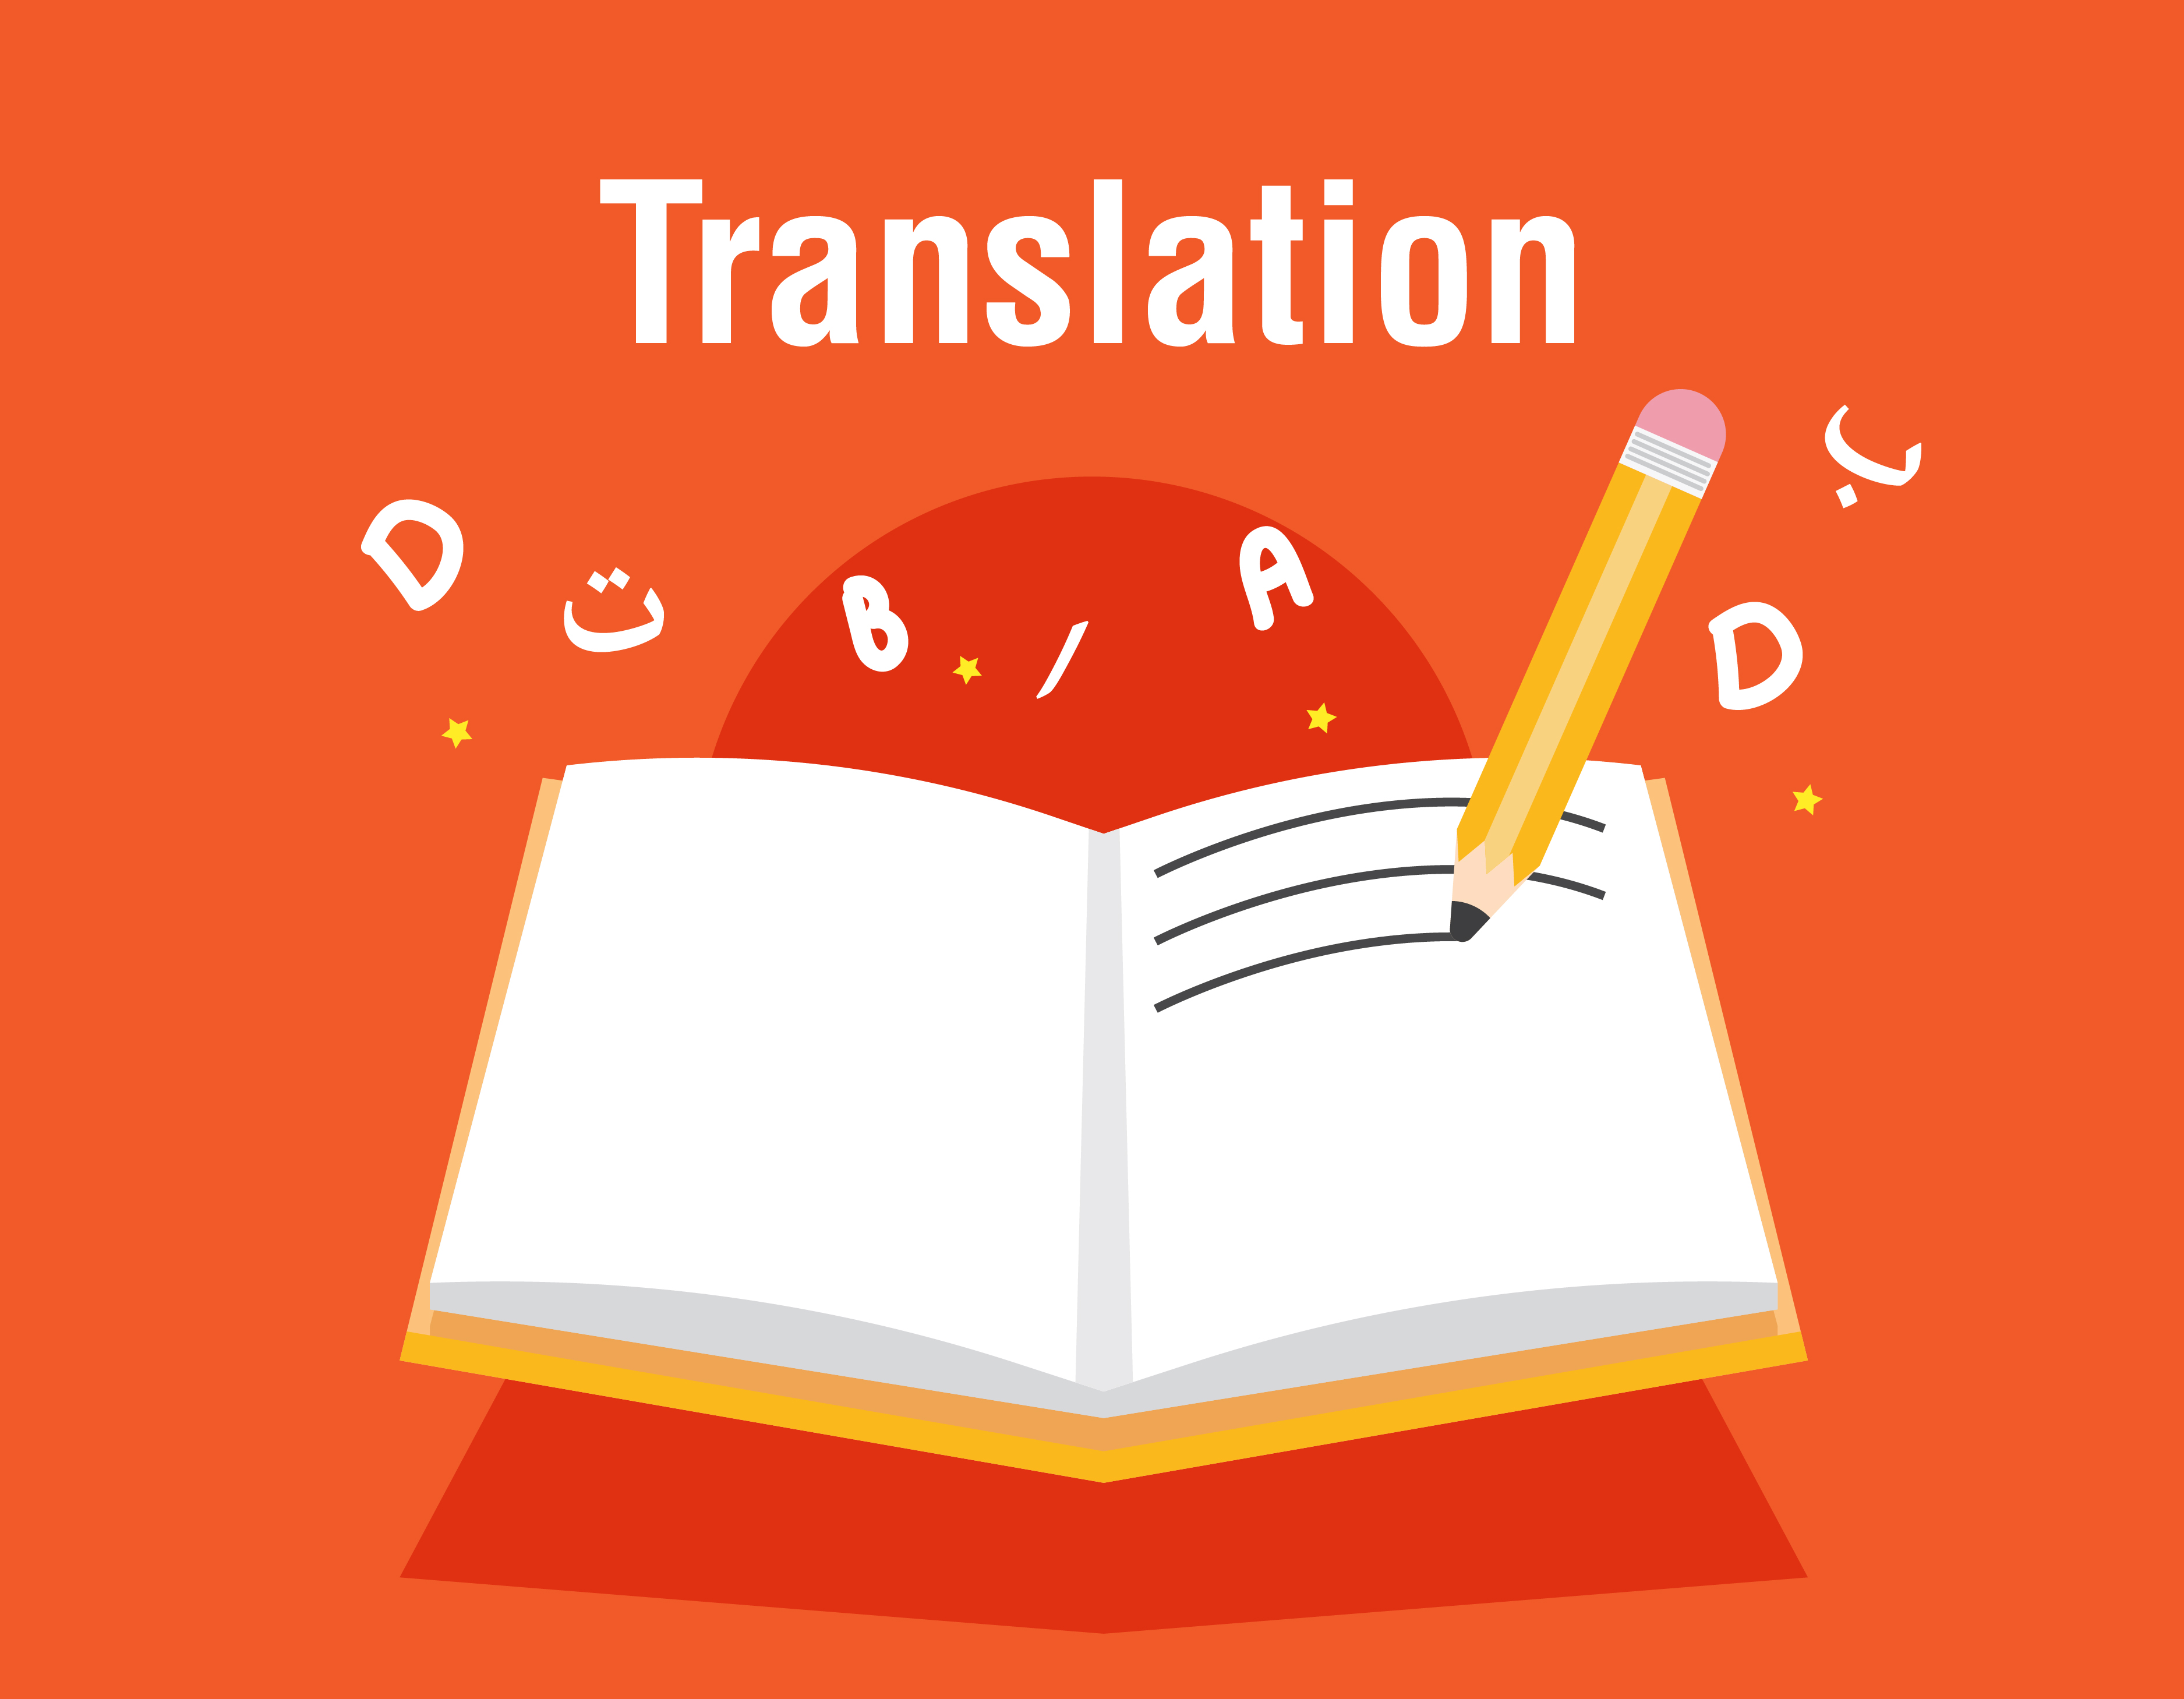 I will translate 1000 Arabic words to English